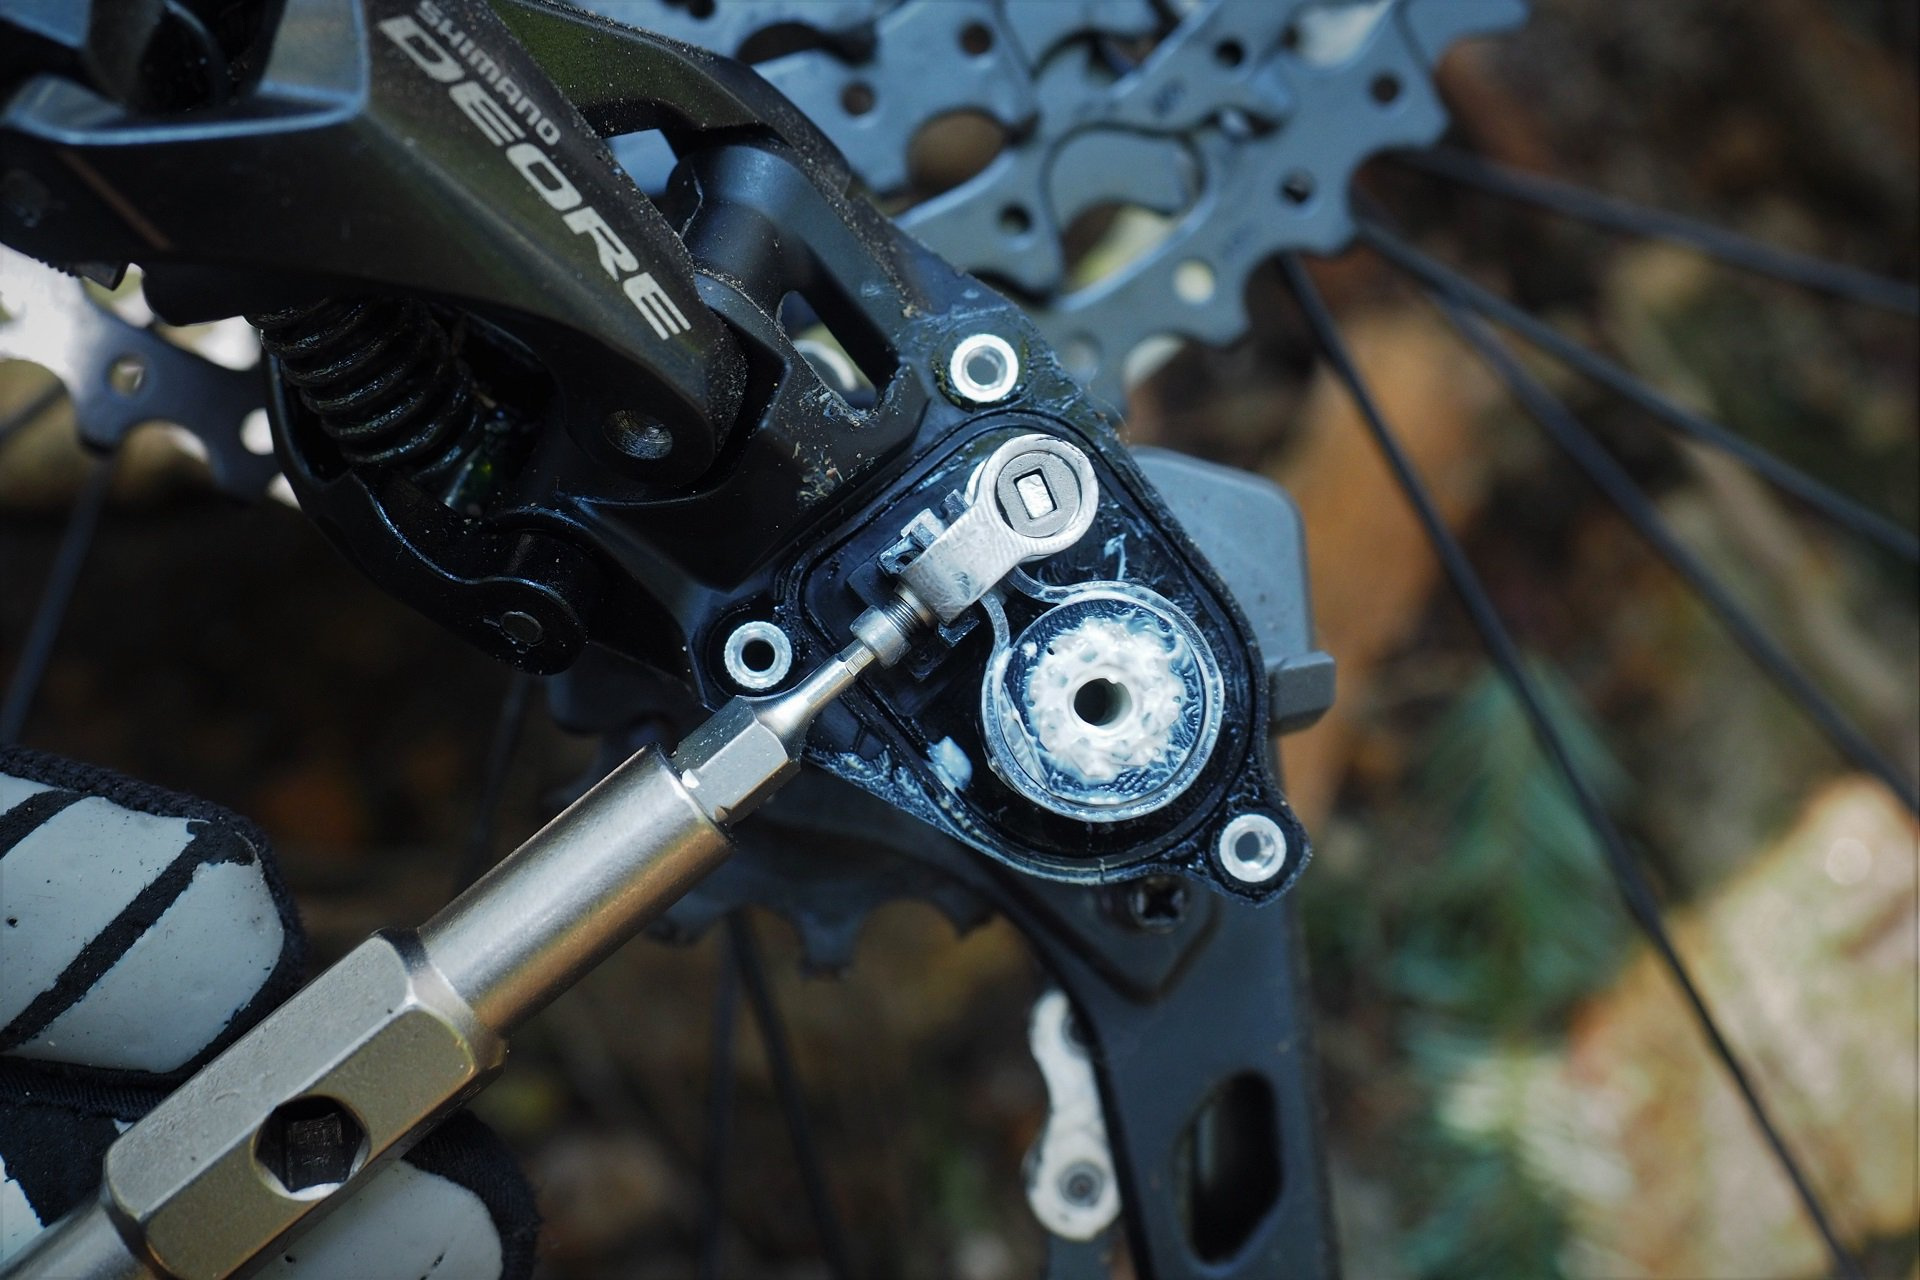 Tips to get your mountain bike ready for riding season